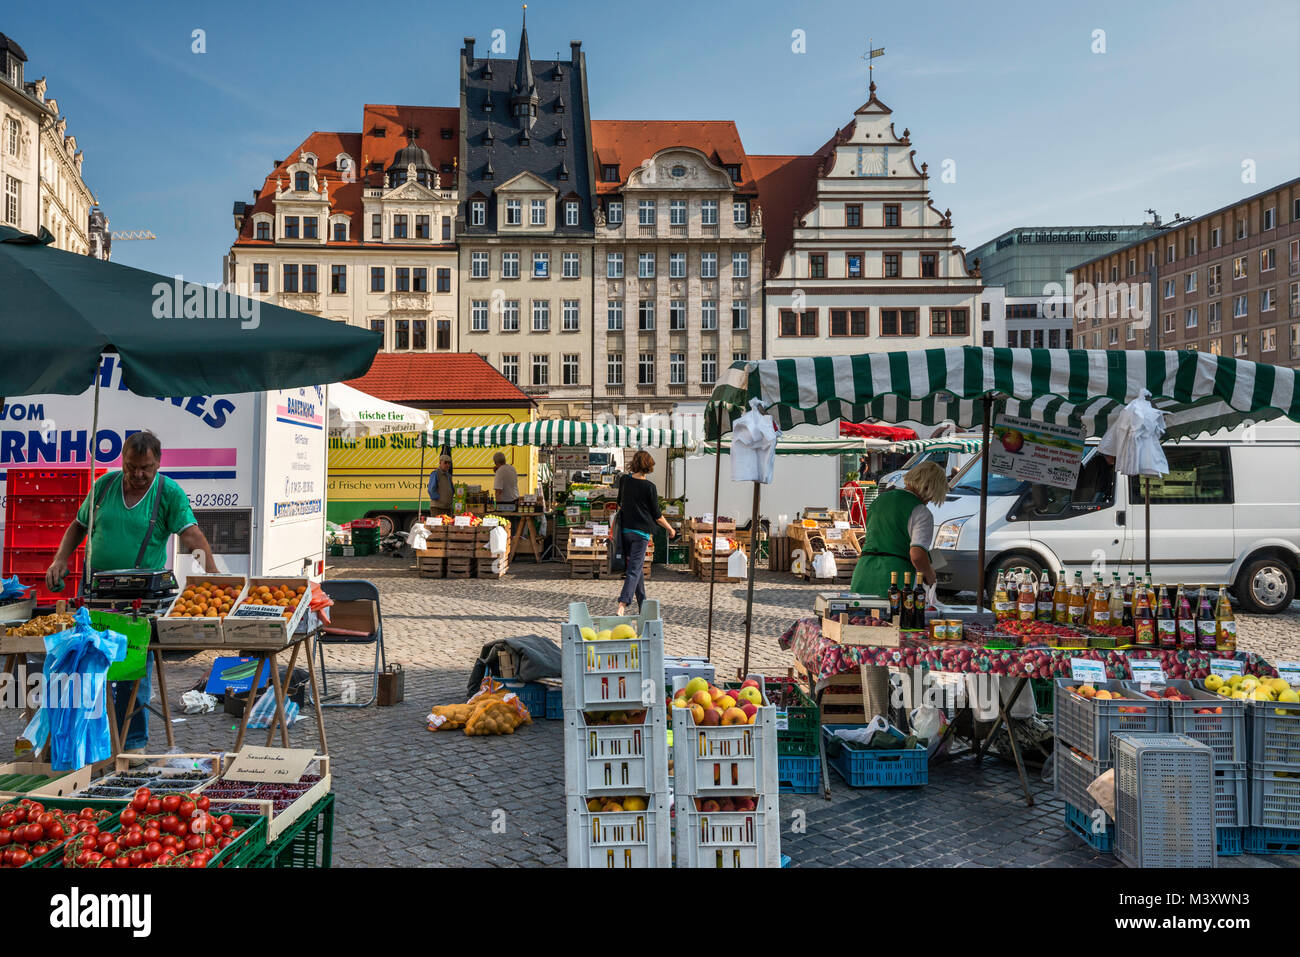 Market day at Markt in Leipzig, Saxony, Germany - Stock Image